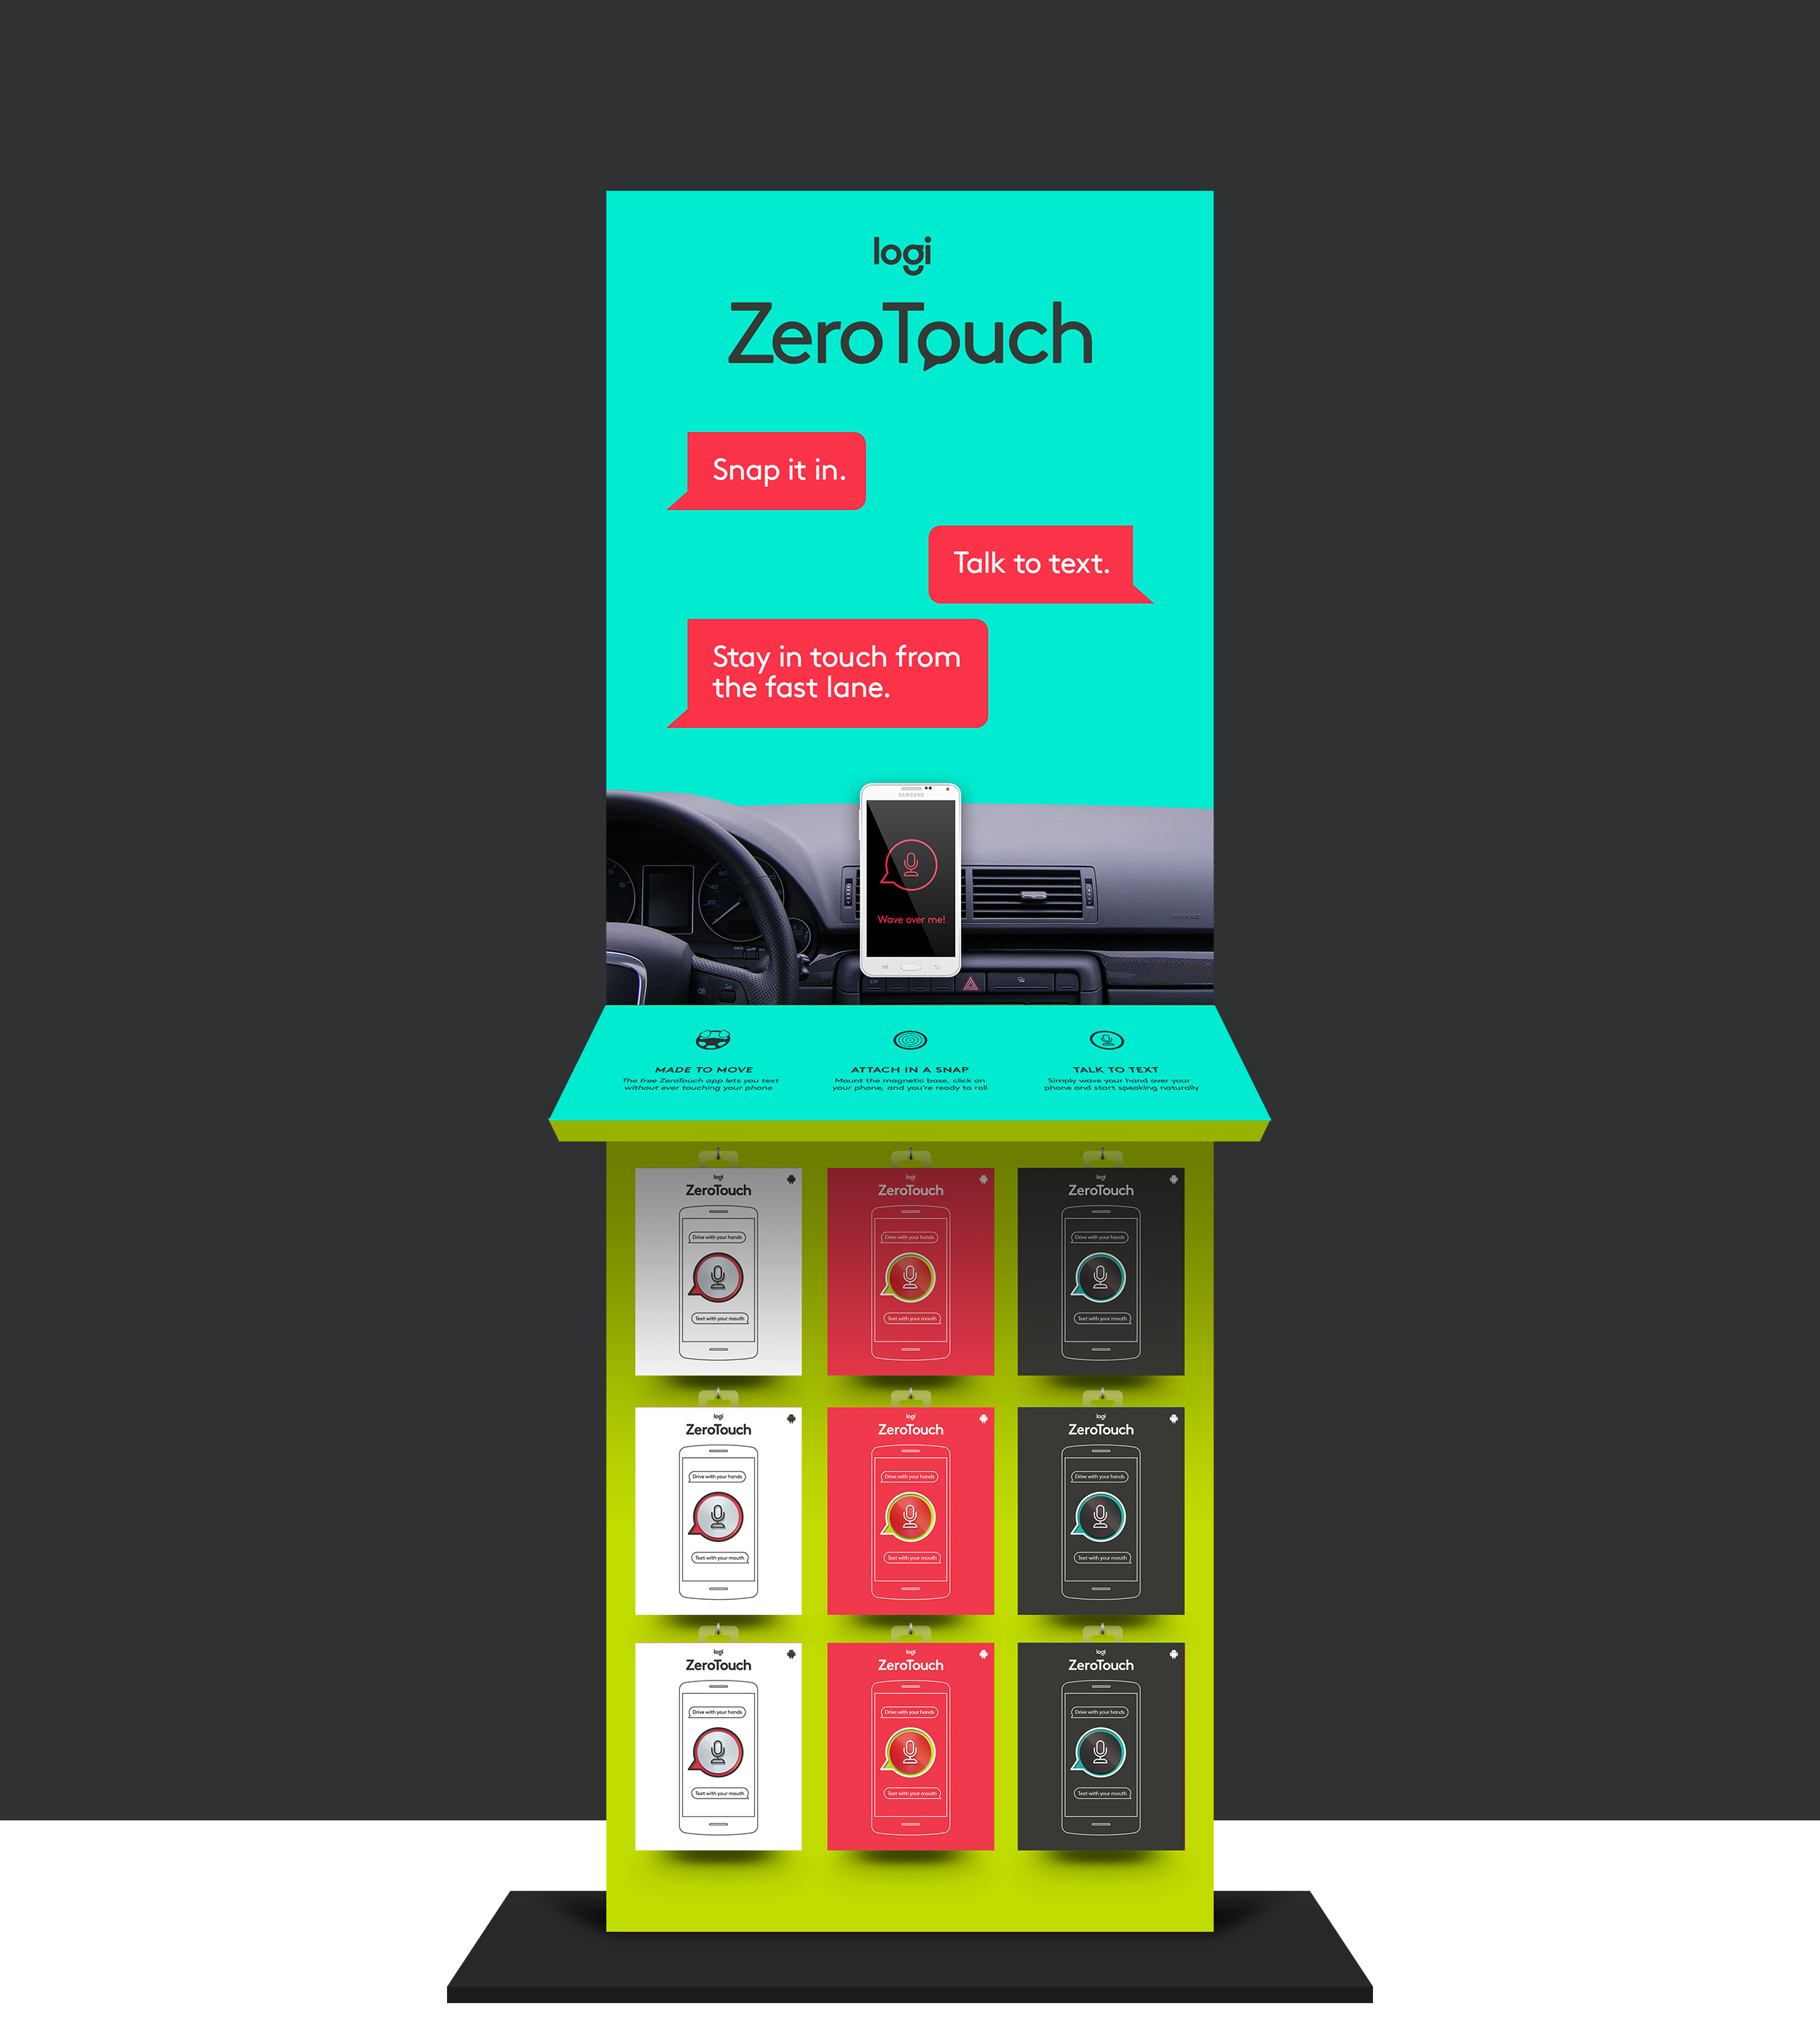 Logitech ZeroTouchKeep in touch,from ten and two. - We created a launch campaign was designed to get tech-savvy drivers excited about using ZeroTouch. To dodge the inherent elements of taboo and fear in these types of conversations, we created charming, illustrated characters which anchored the messaging across multiple platforms.Creative Direction, branding, advertising, packaging